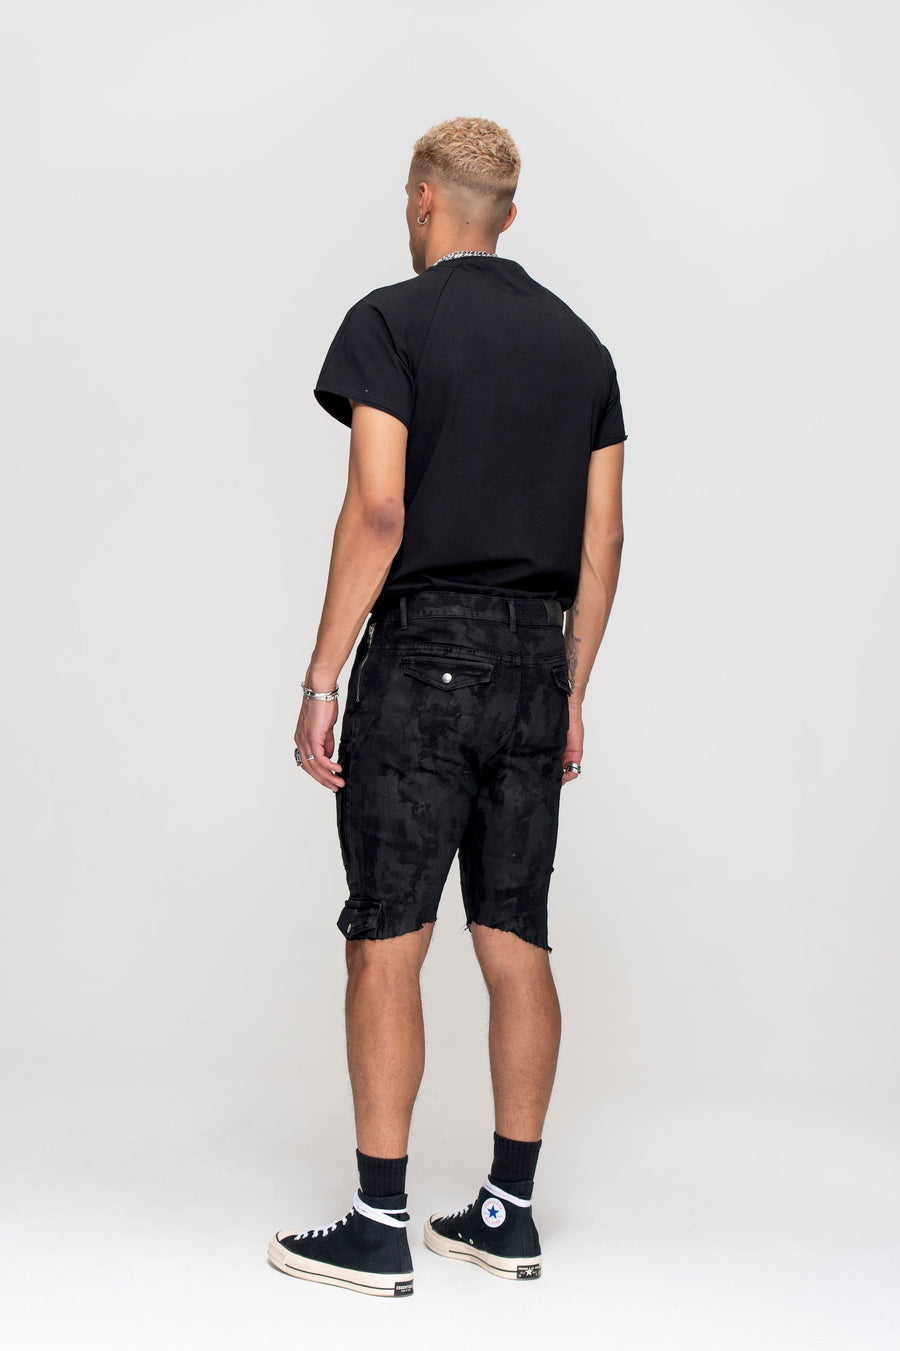 Kago Shorts Black Wax